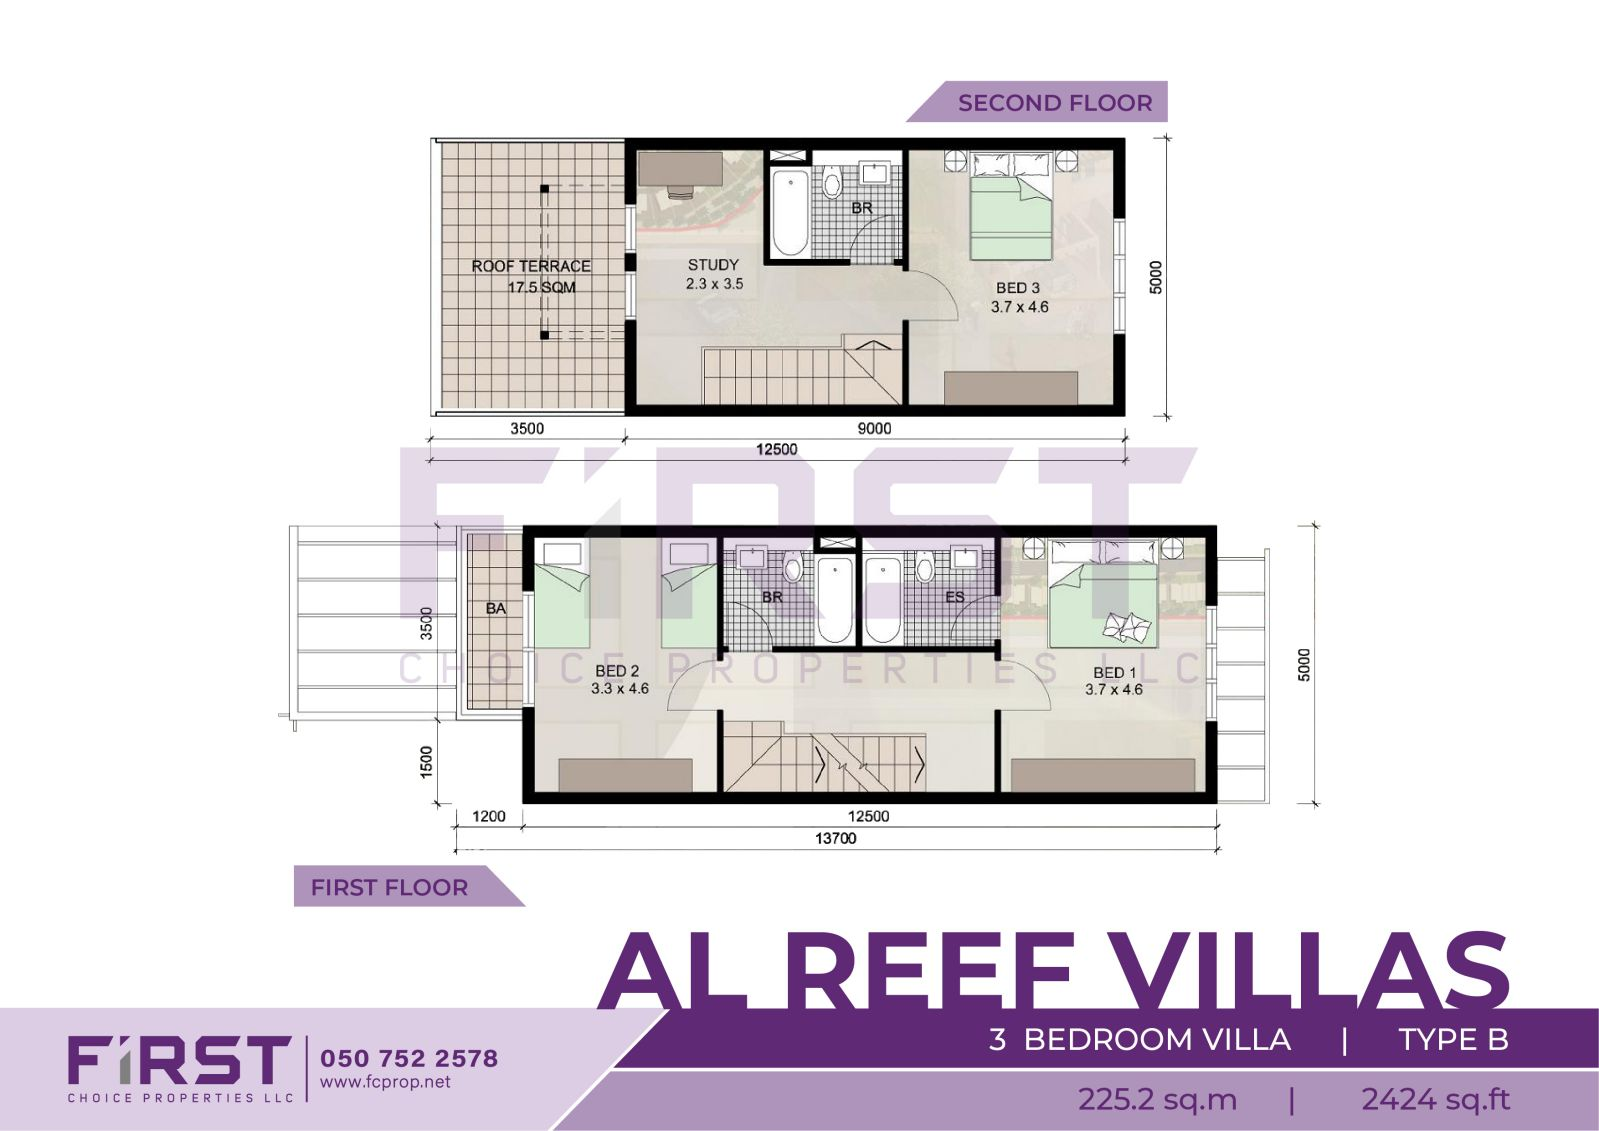 Floor Plan of 3 Bedroom Villa Type B in Al Reef Villas Al Reef Abu Dhabi UAE 225.2 sq.m 2424 sq.ft 1.jpg